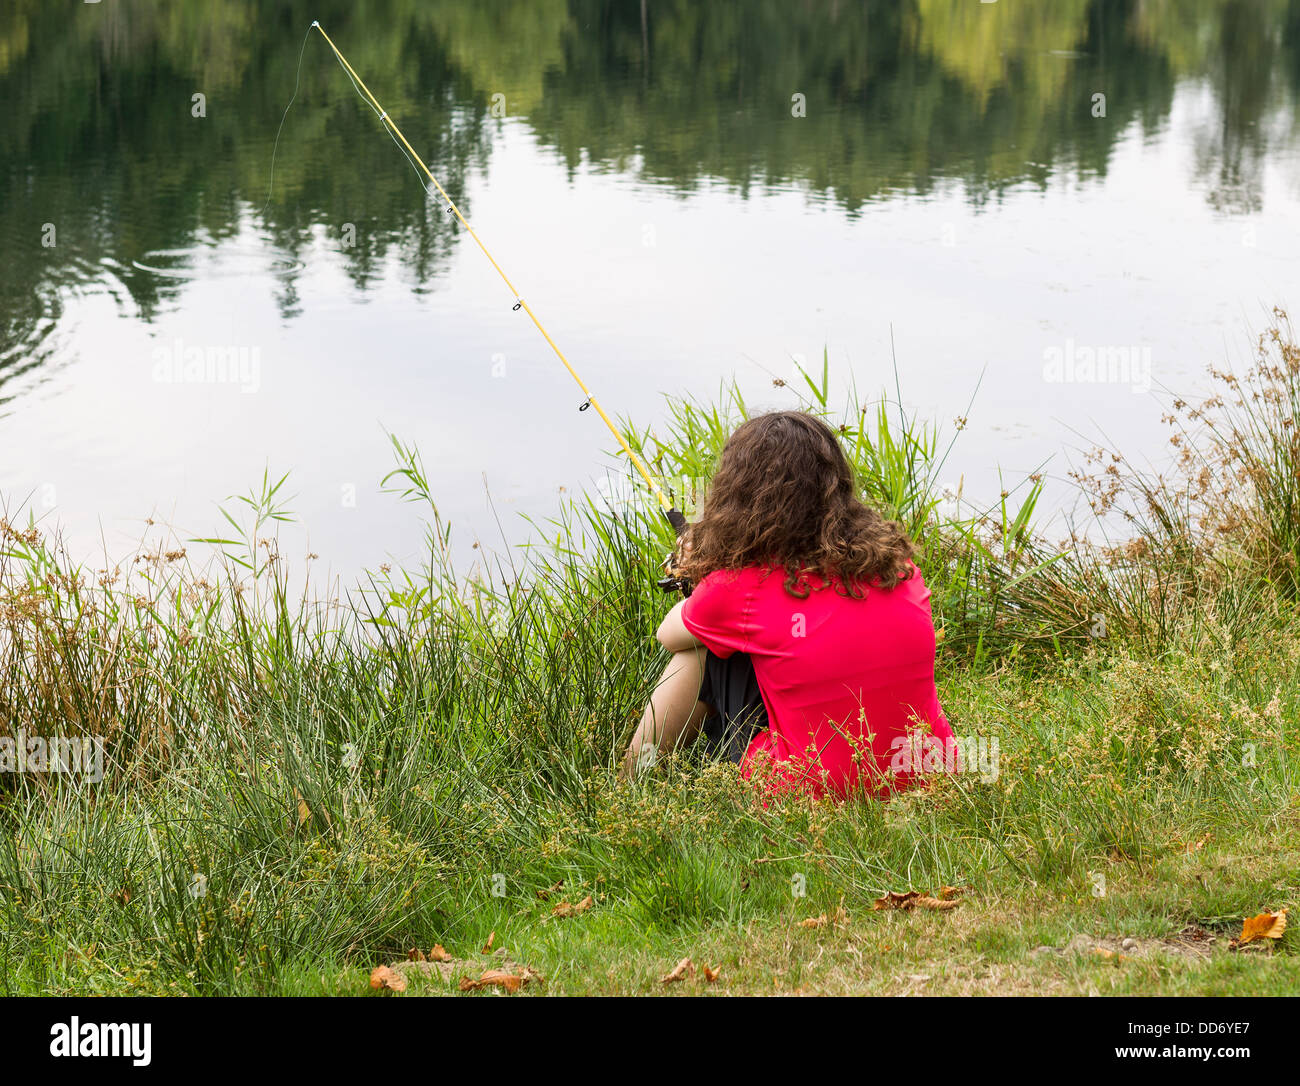 Photo of young girl patiently waiting for fish to bite with lake and trees in background - Stock Image